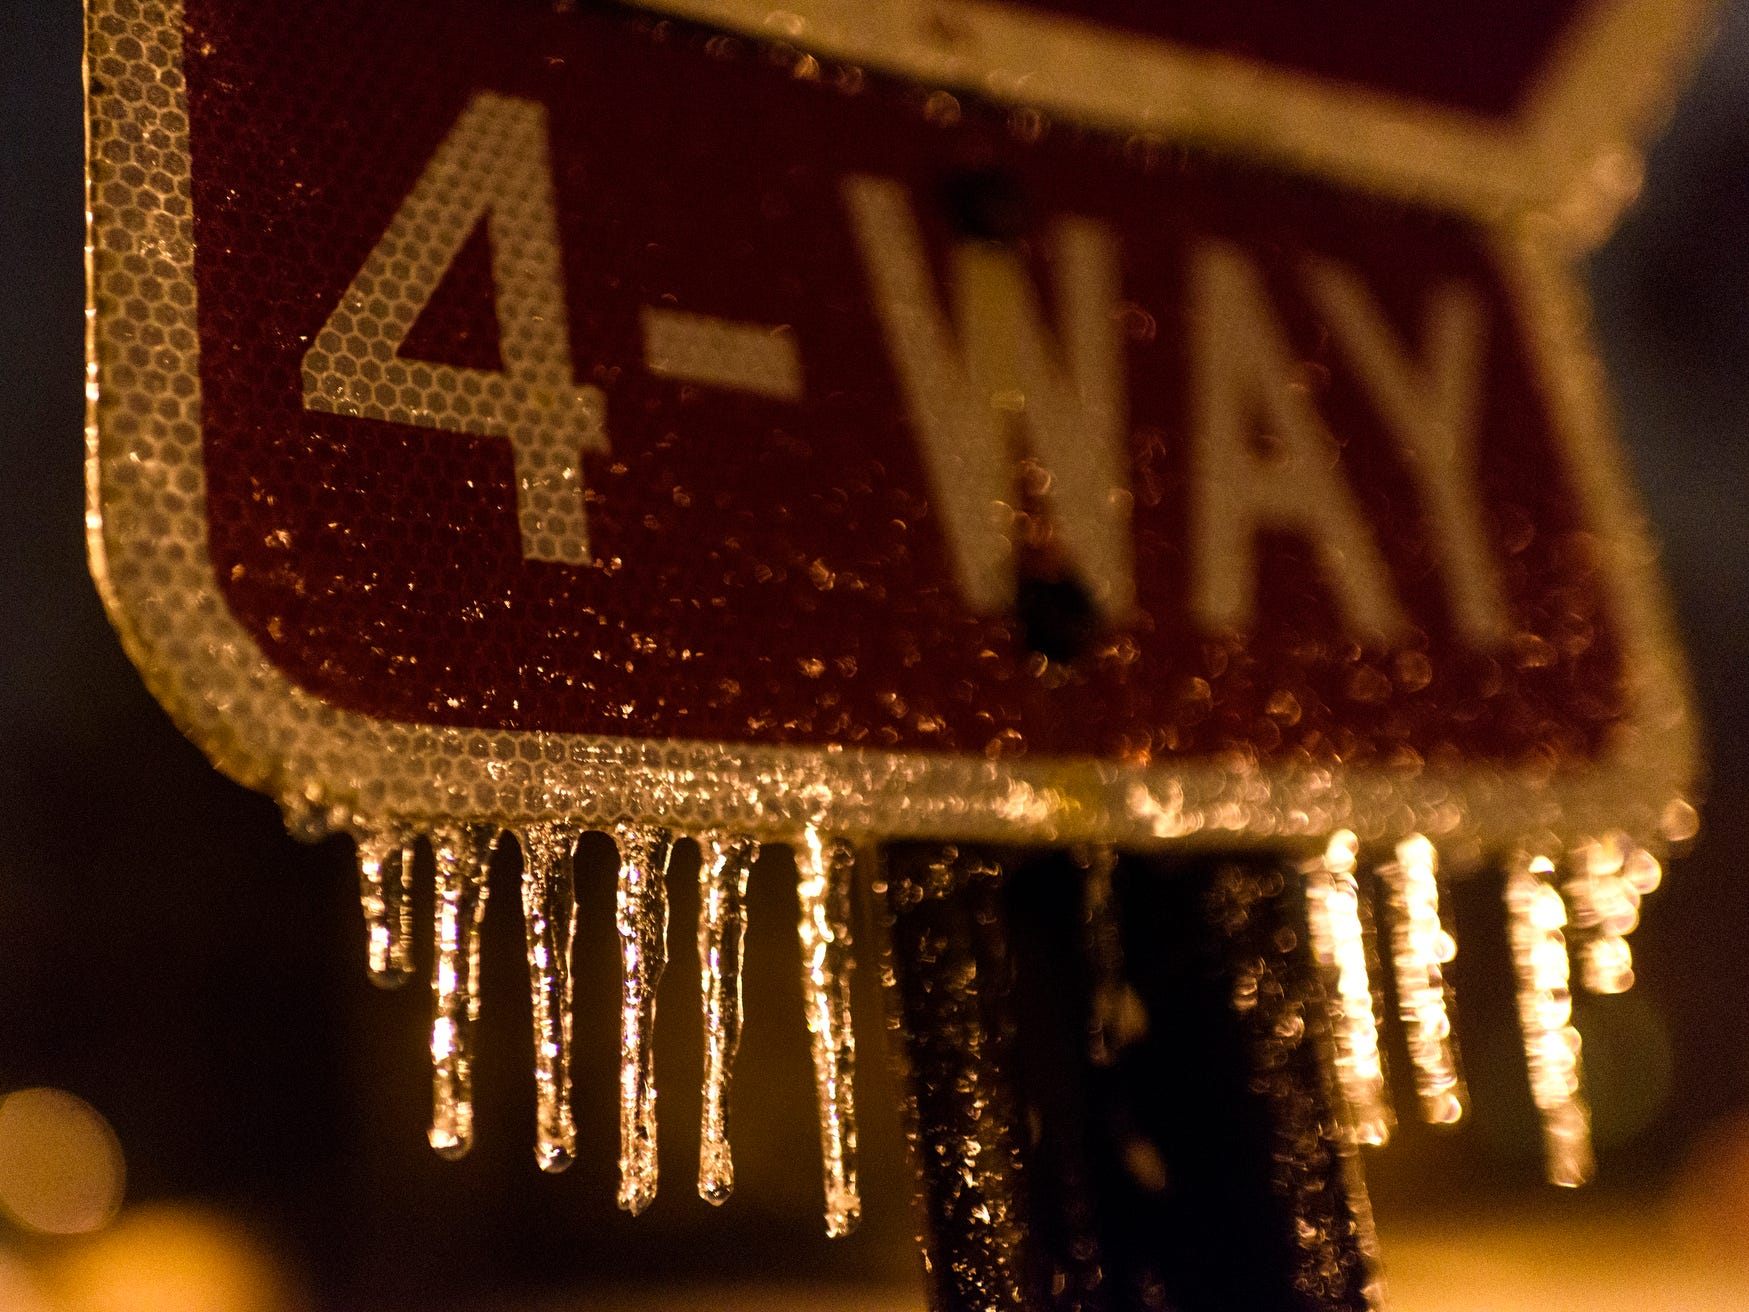 Icicles form on a four-way stop sign at the intersection in downtown Evansville, Ind., Wednesday, Nov. 14, 2018.